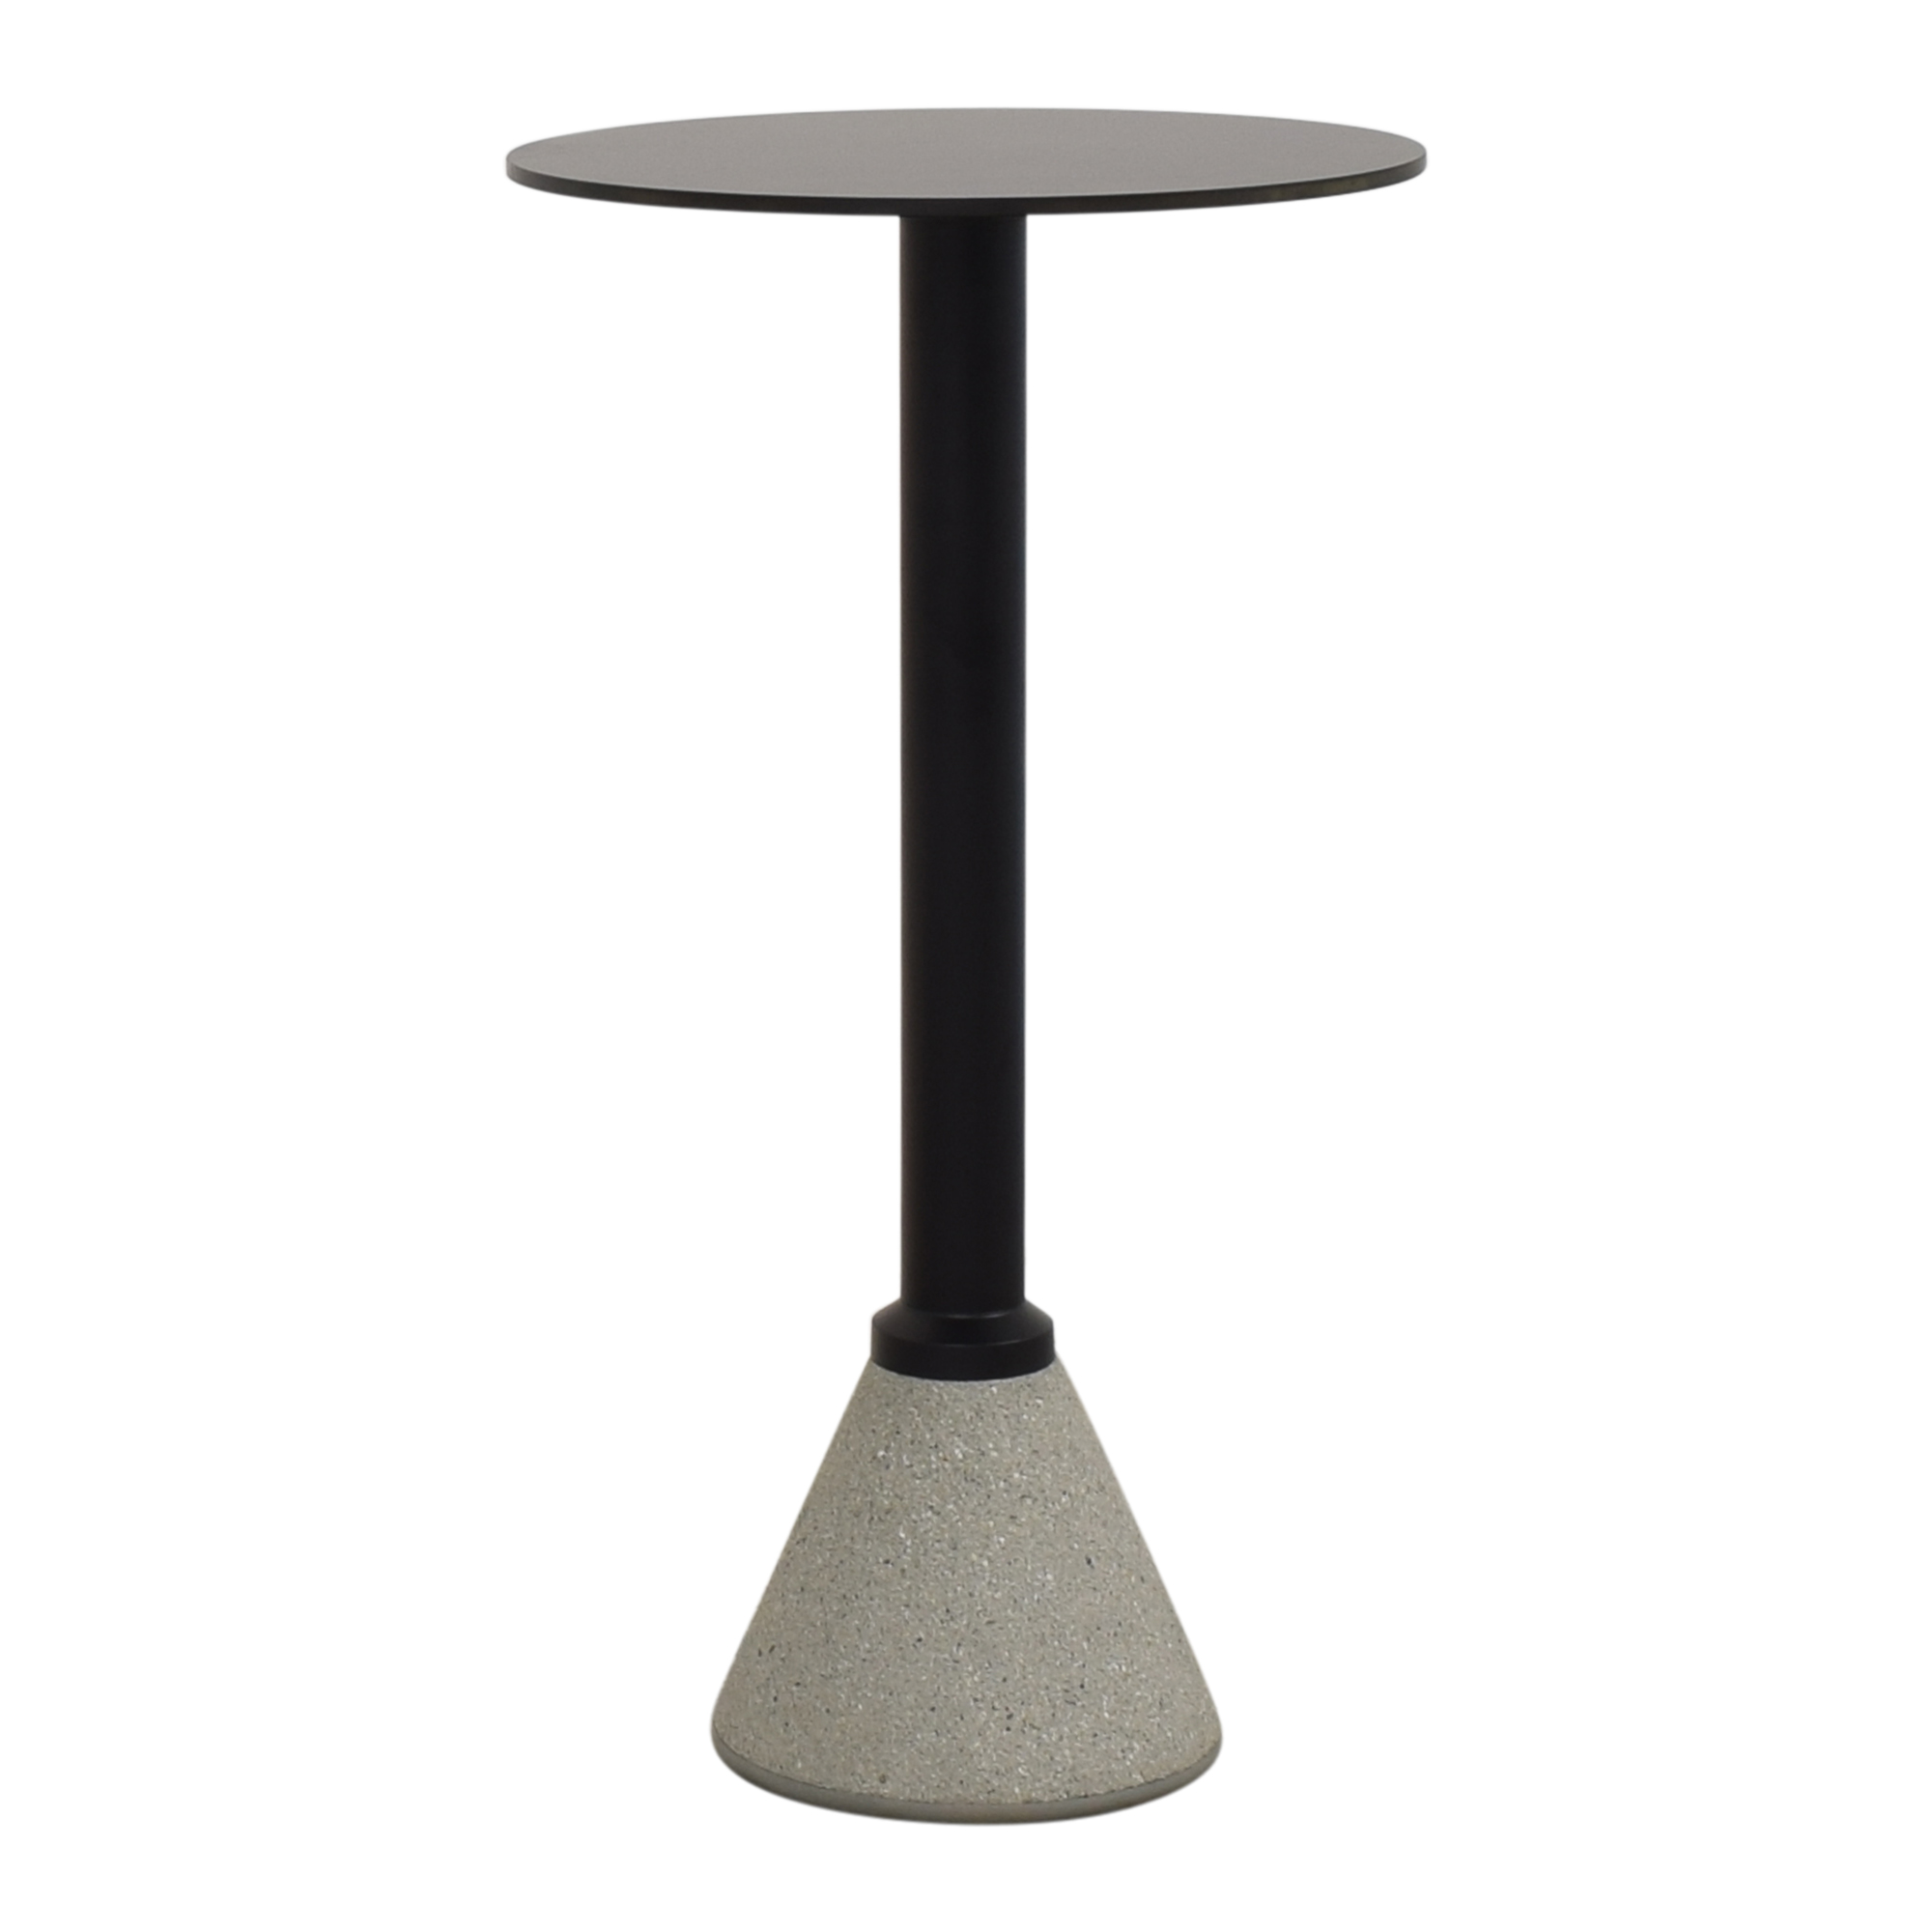 Magis Magis Table_One Bistrot Bar Table on sale